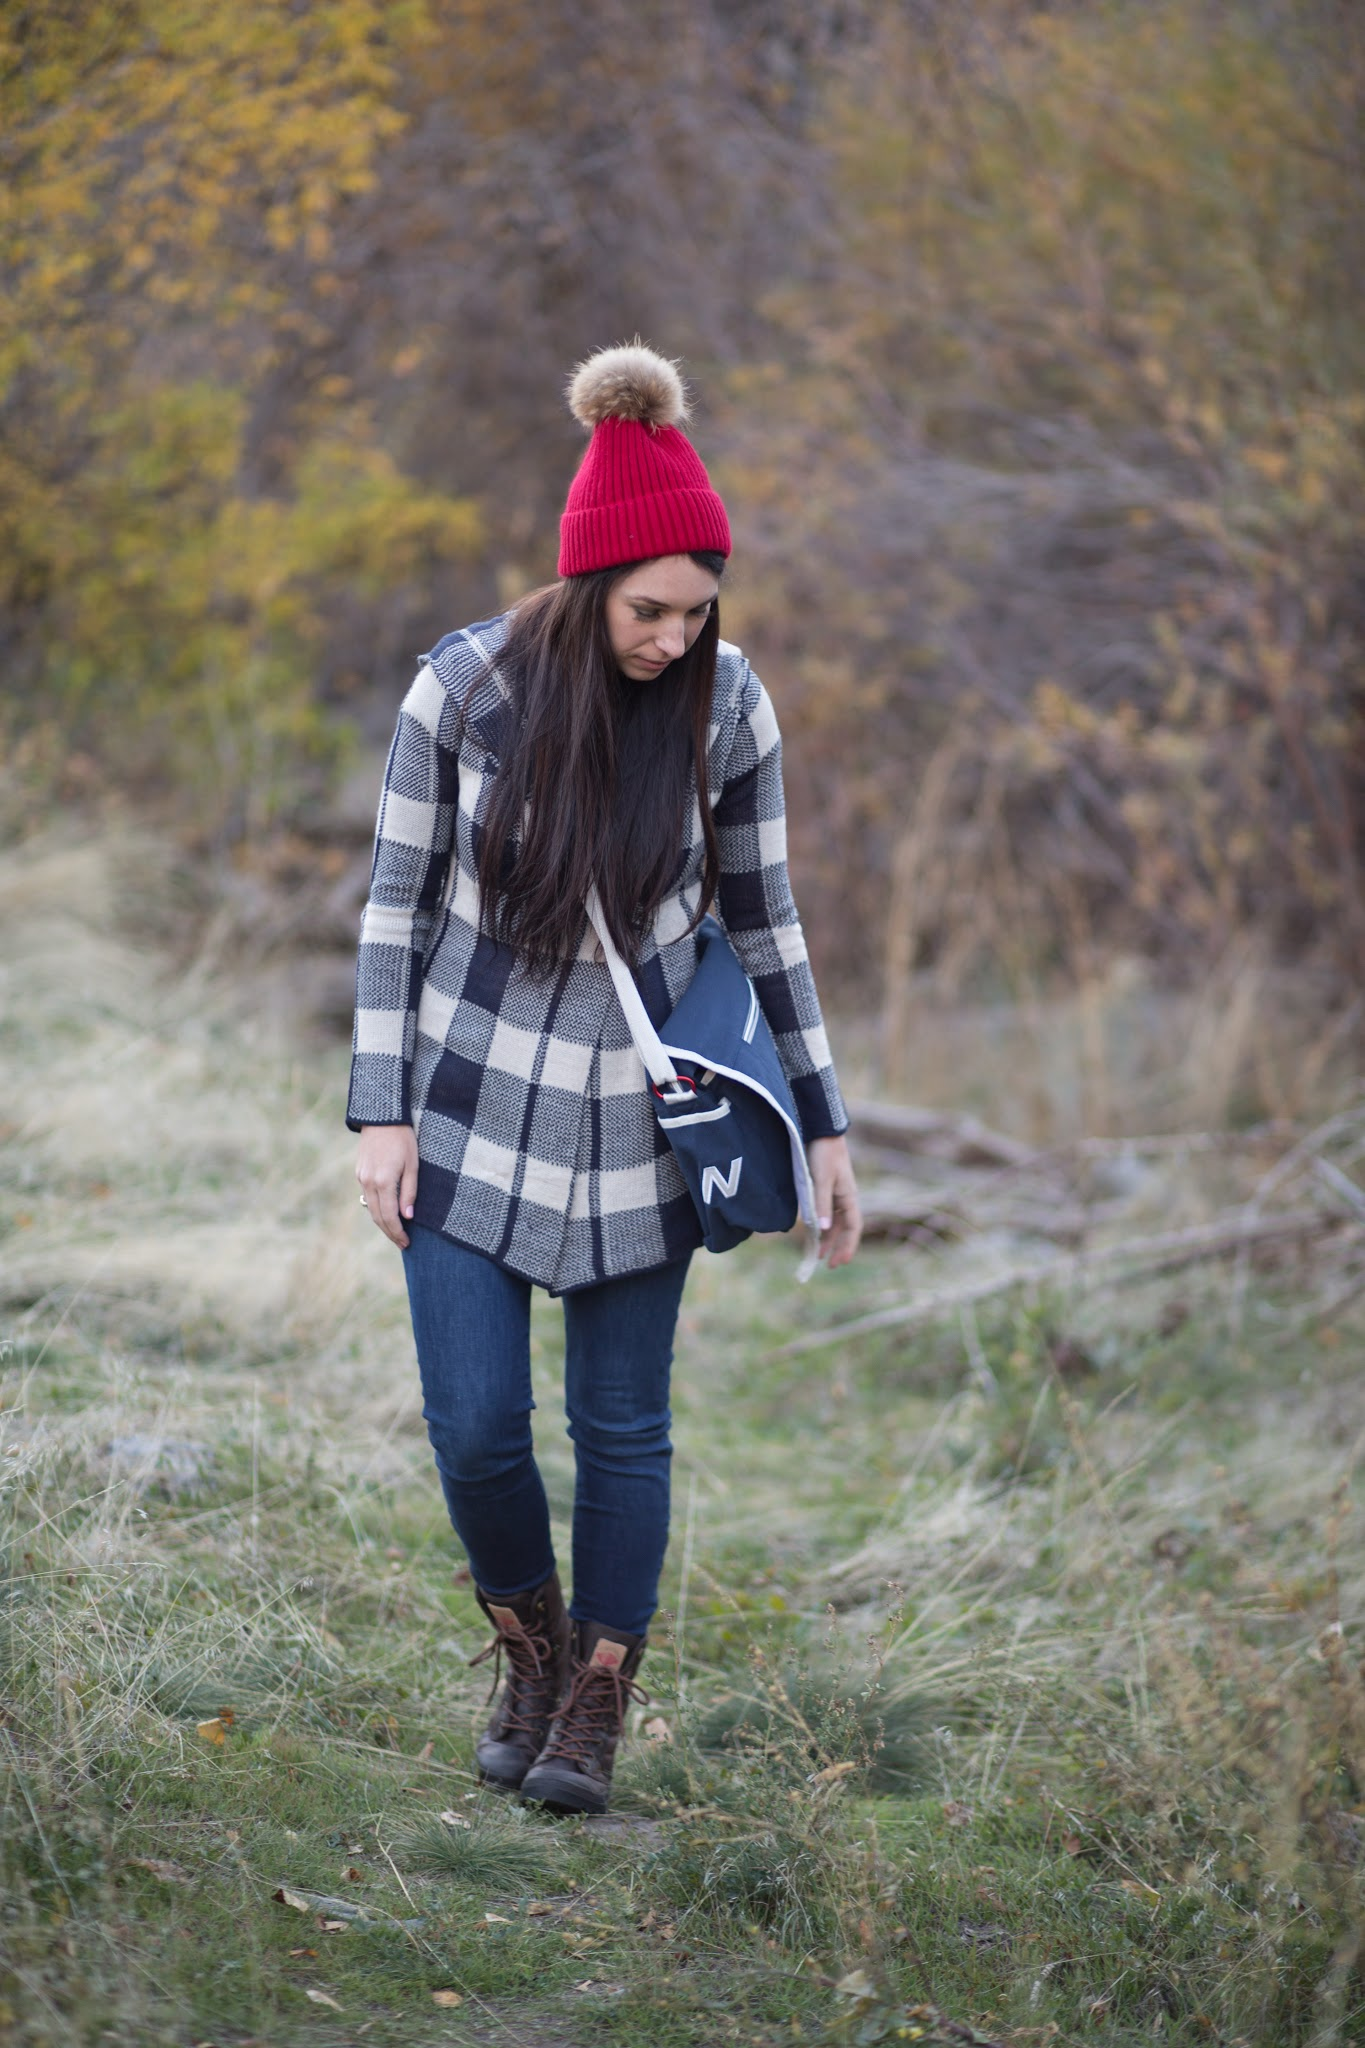 Ideas on what to wear during the fall